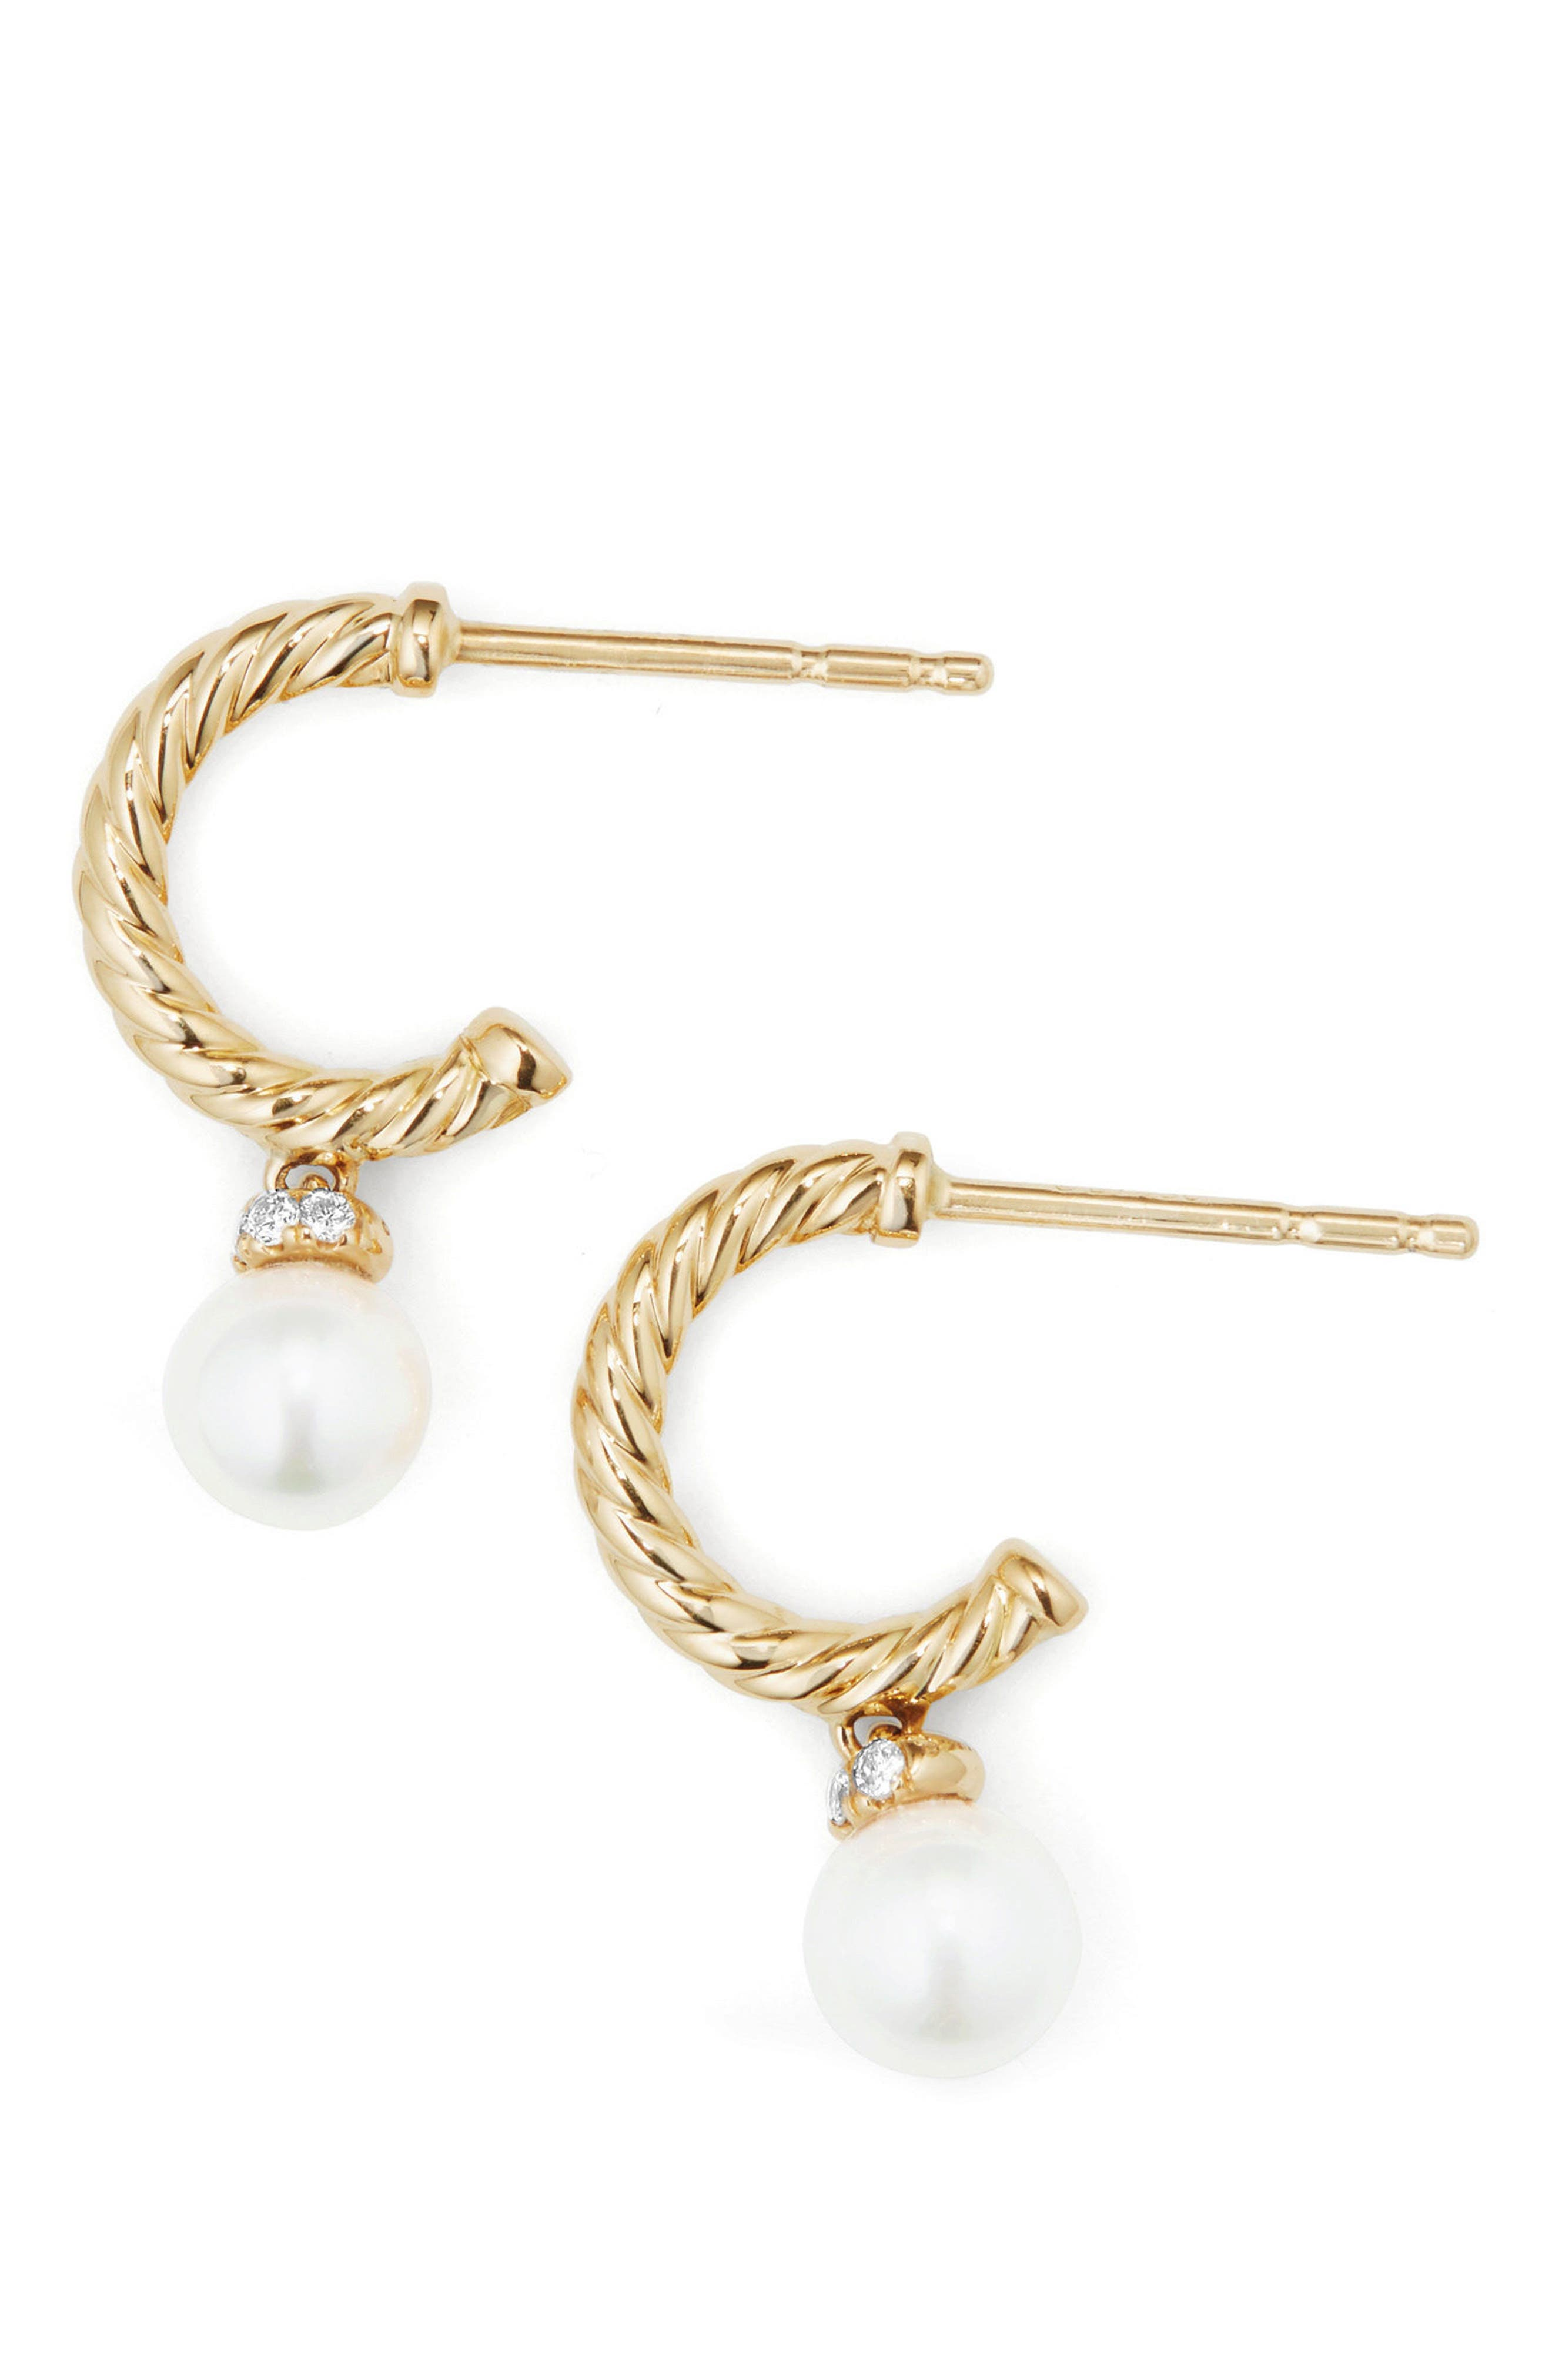 Solari Hoop Earrings with Diamonds & Pearls in 18K Gold,                         Main,                         color, Yellow Gold/ Diamond/ Pearl